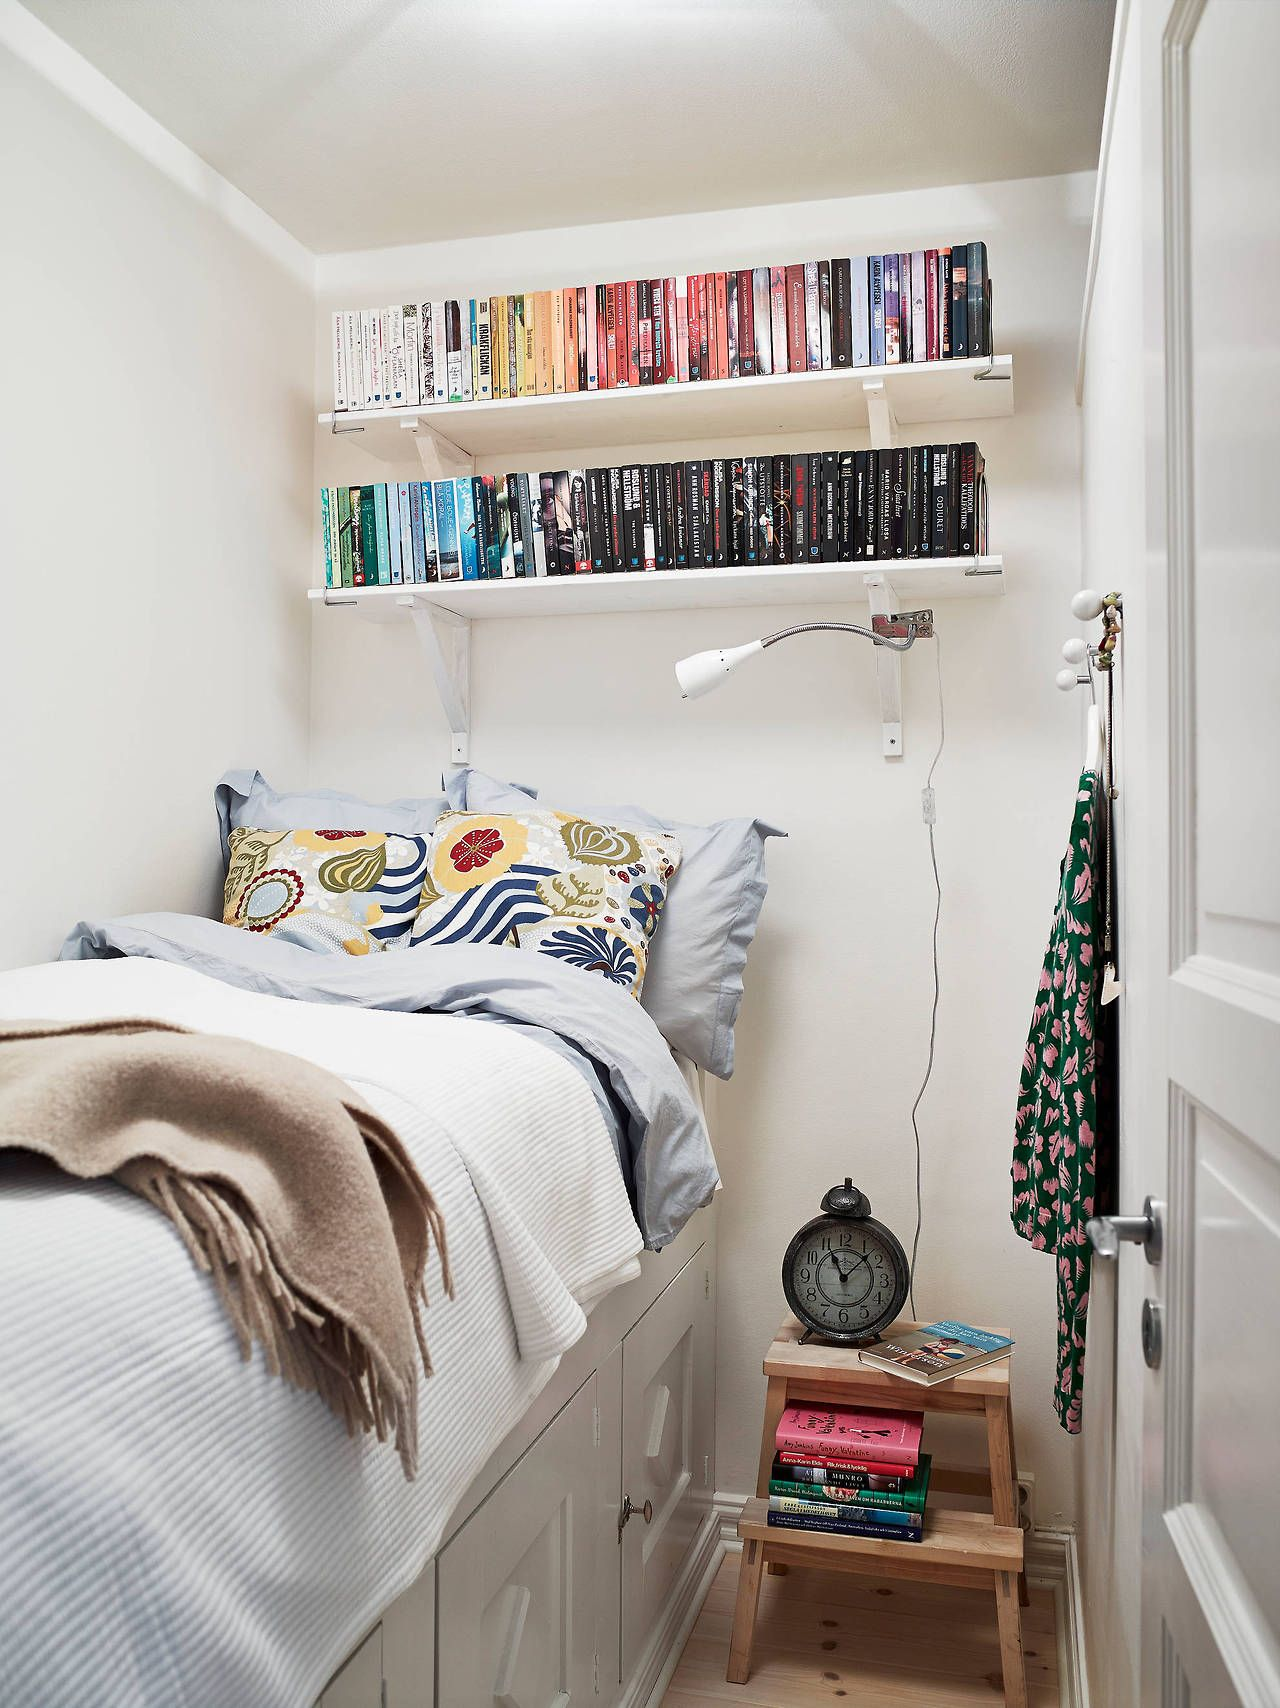 Tiny bedroom - Pap\'s stool by bed?   Small bedroom in 2019   Small ...